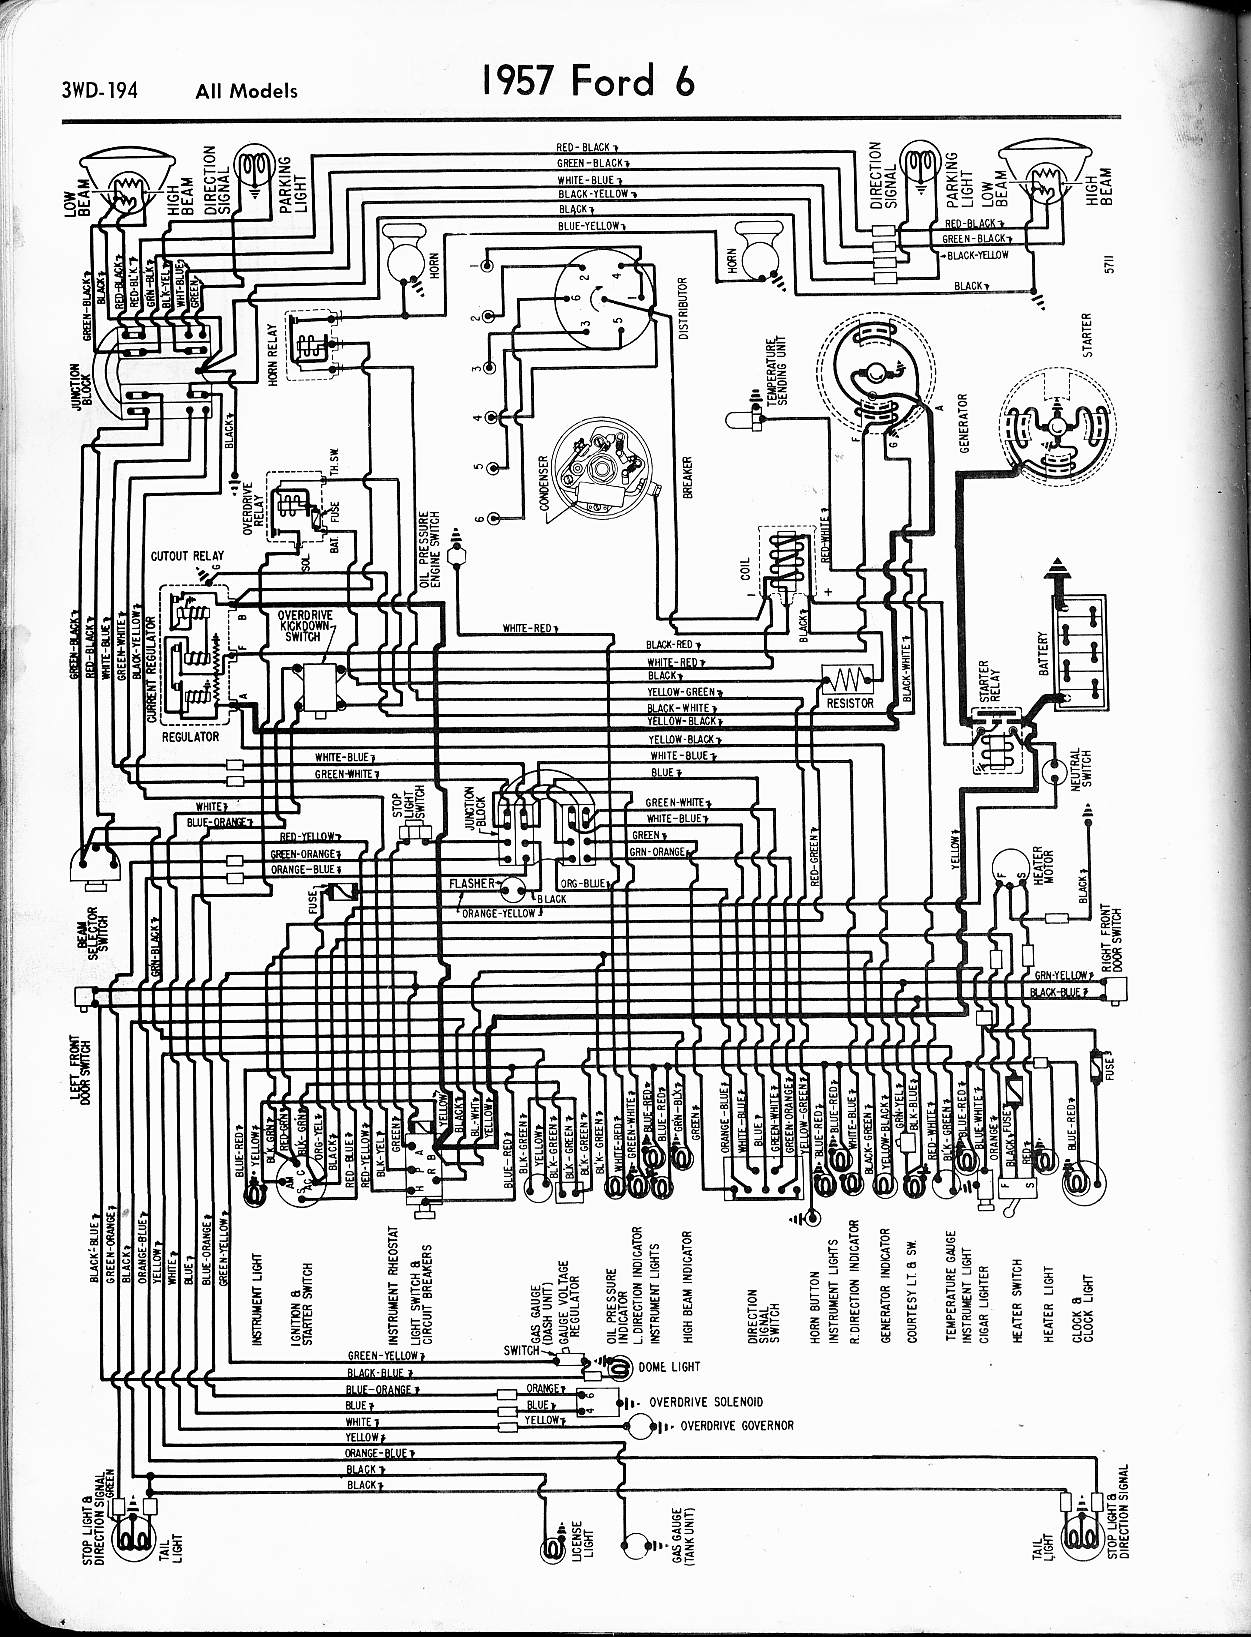 1955 ford radio wiring data wiring diagram update1955 ford radio wiring wiring diagrams schema ford radio